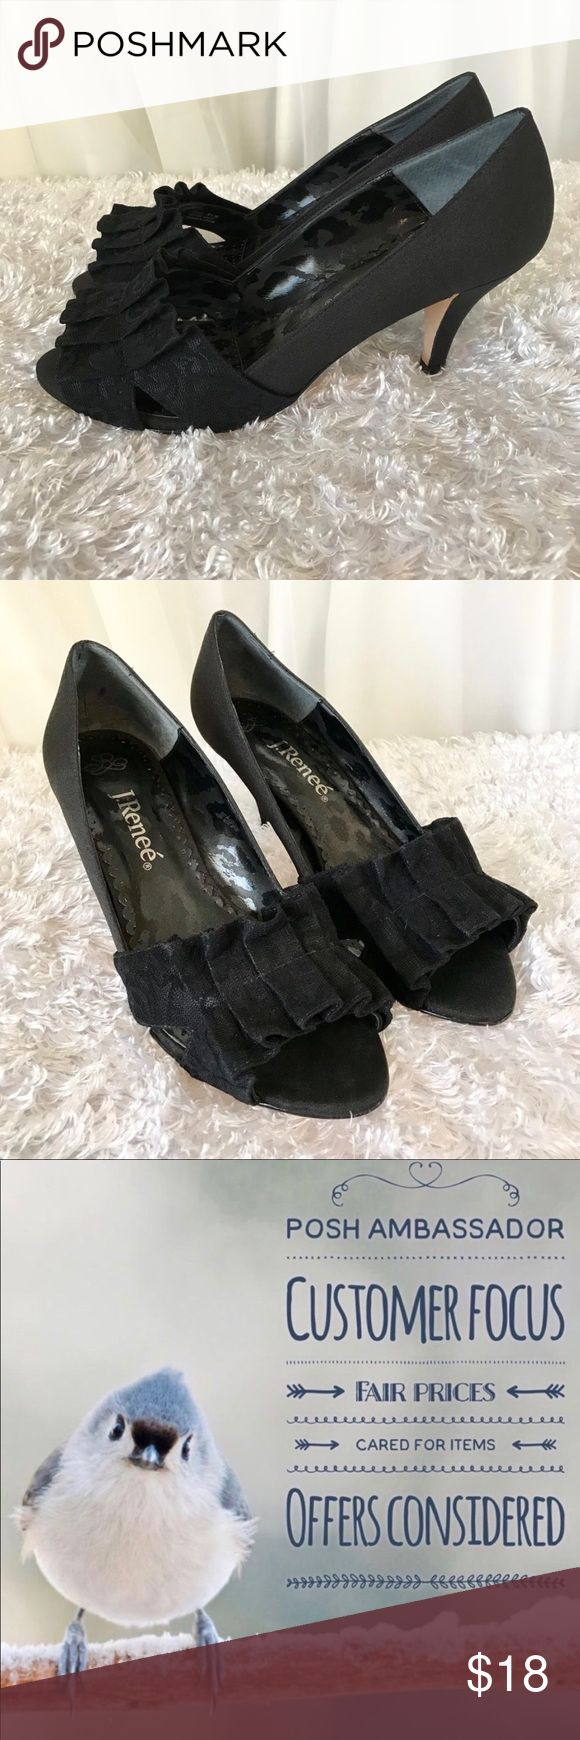 J. Renee Black Suede Pumps Gently used with no flaws  8.5 Medium Width   I ship Monday through Saturday, weather permitting. If you have a moment check out my other items. Thank you! J. Renee Shoes Heels